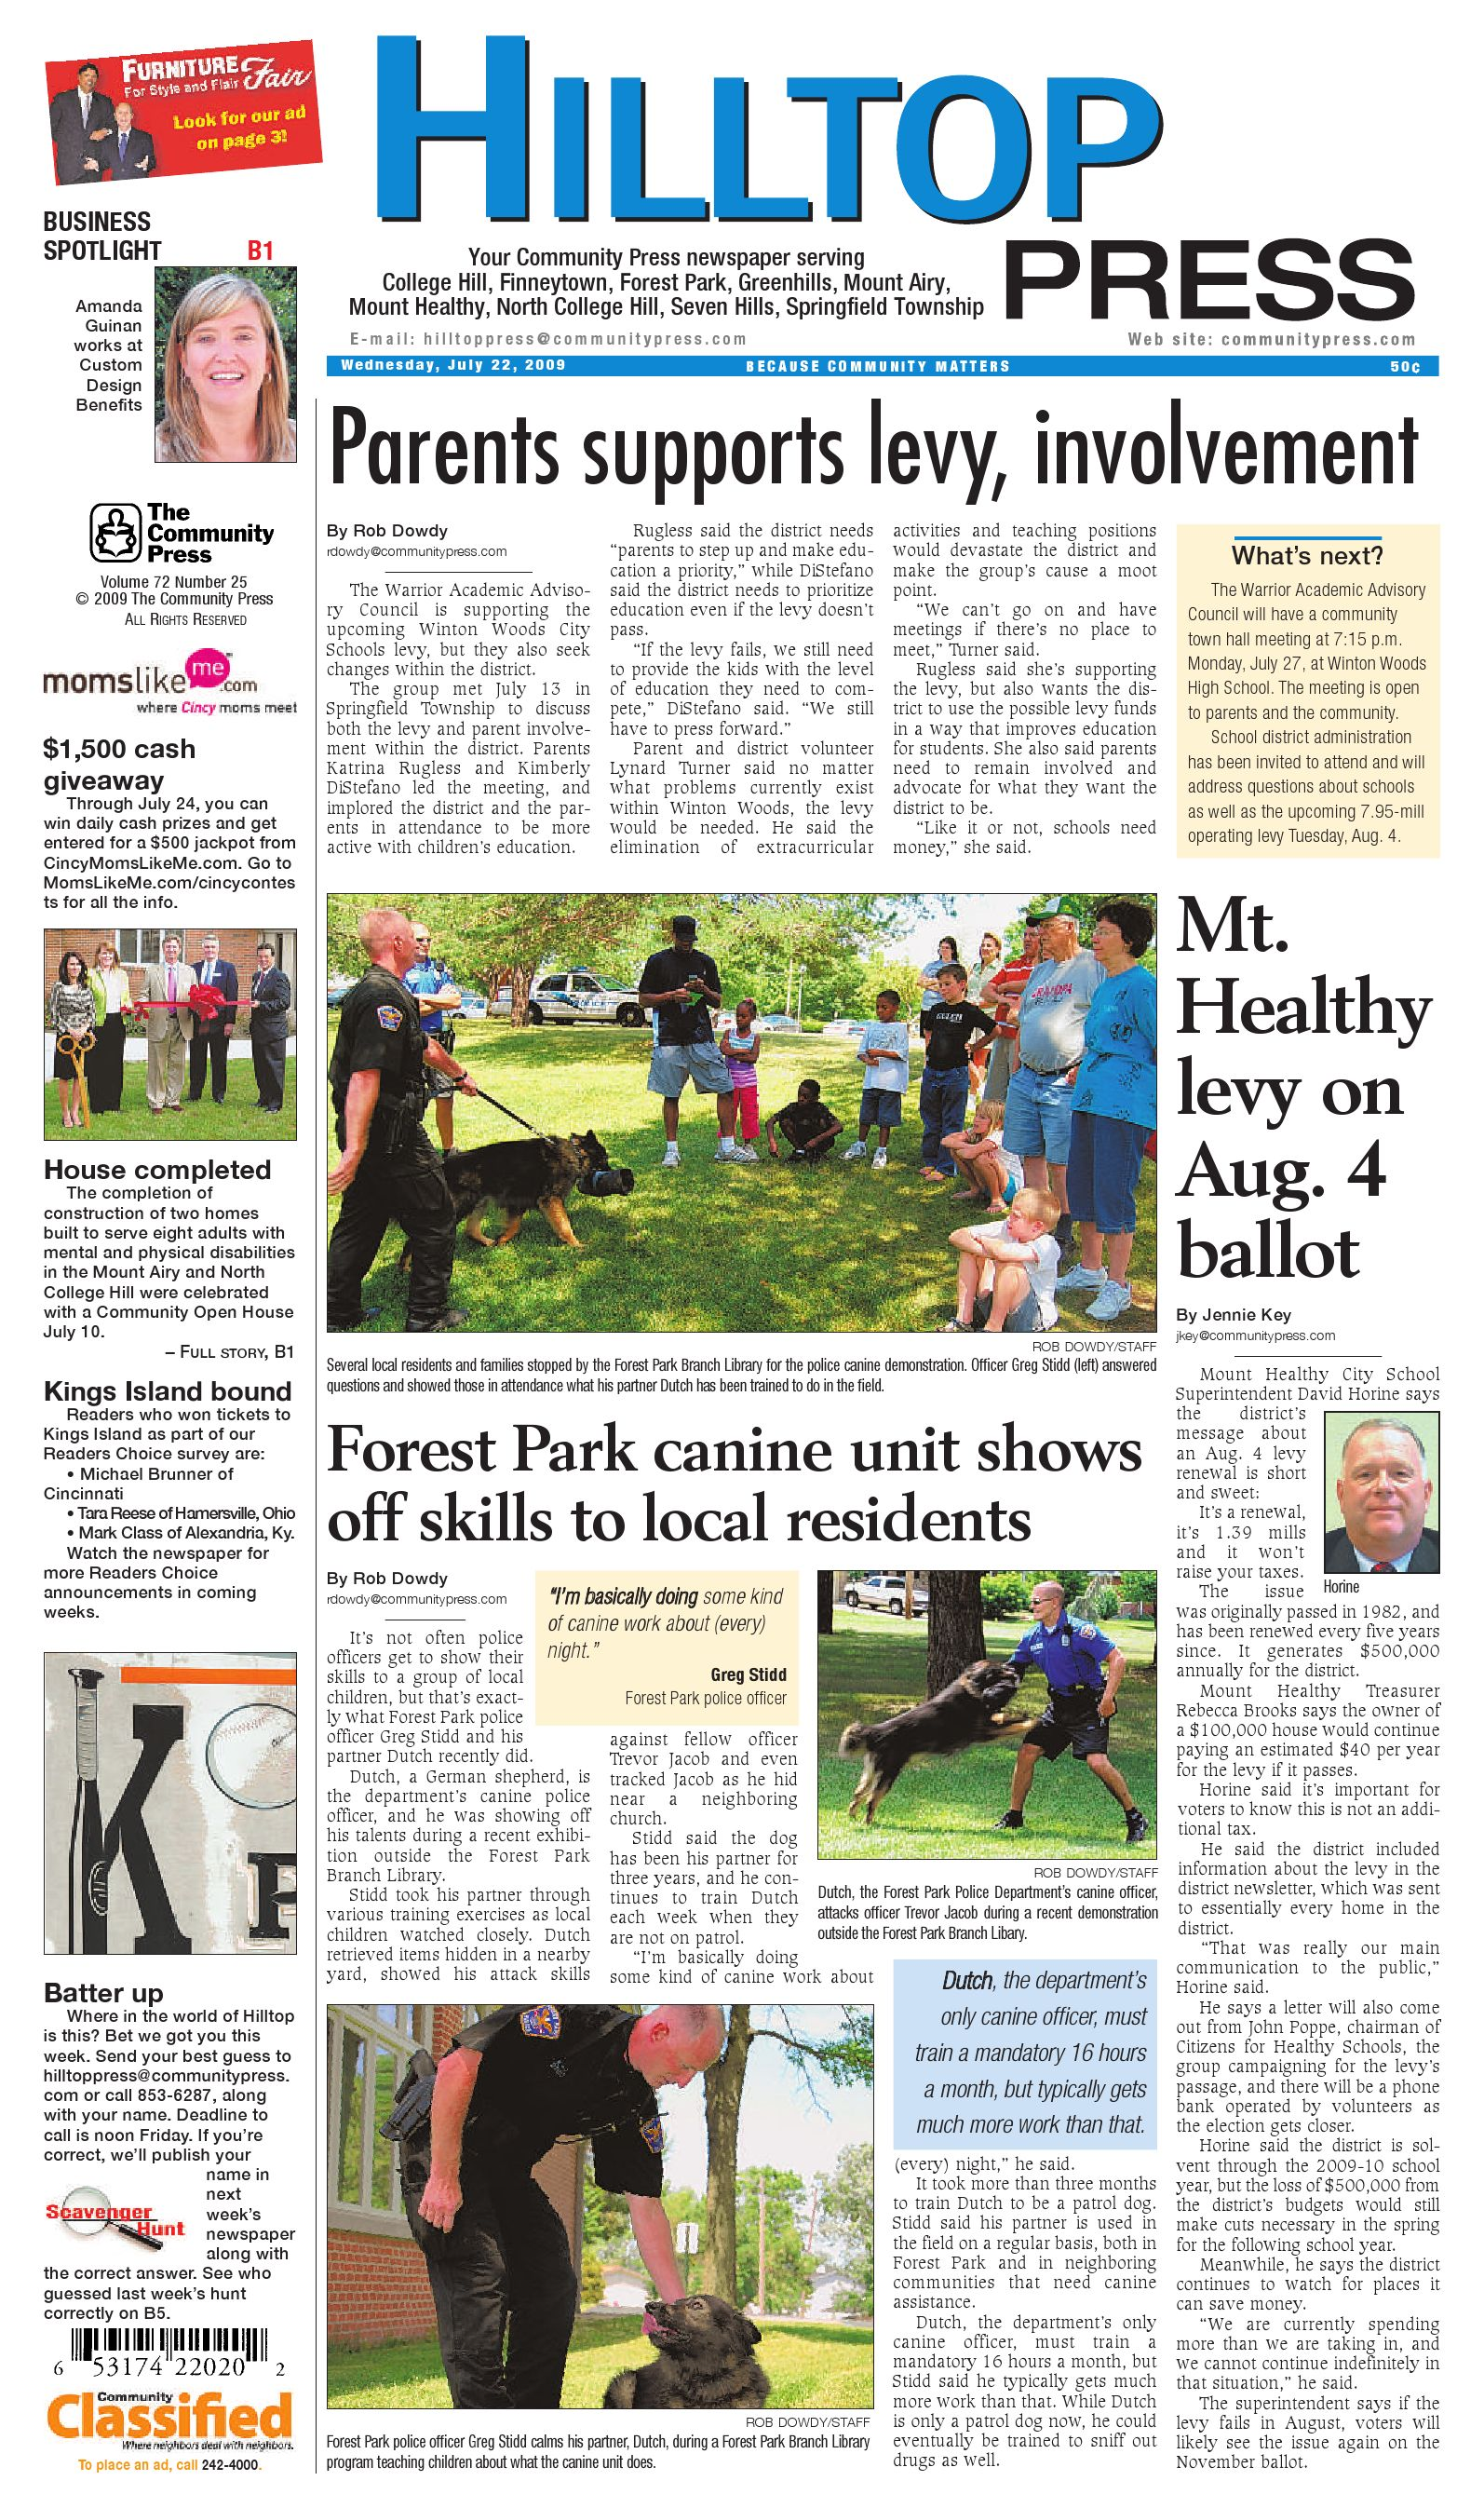 hilltop press 072209 by Enquirer Media - issuu 43cea8b85